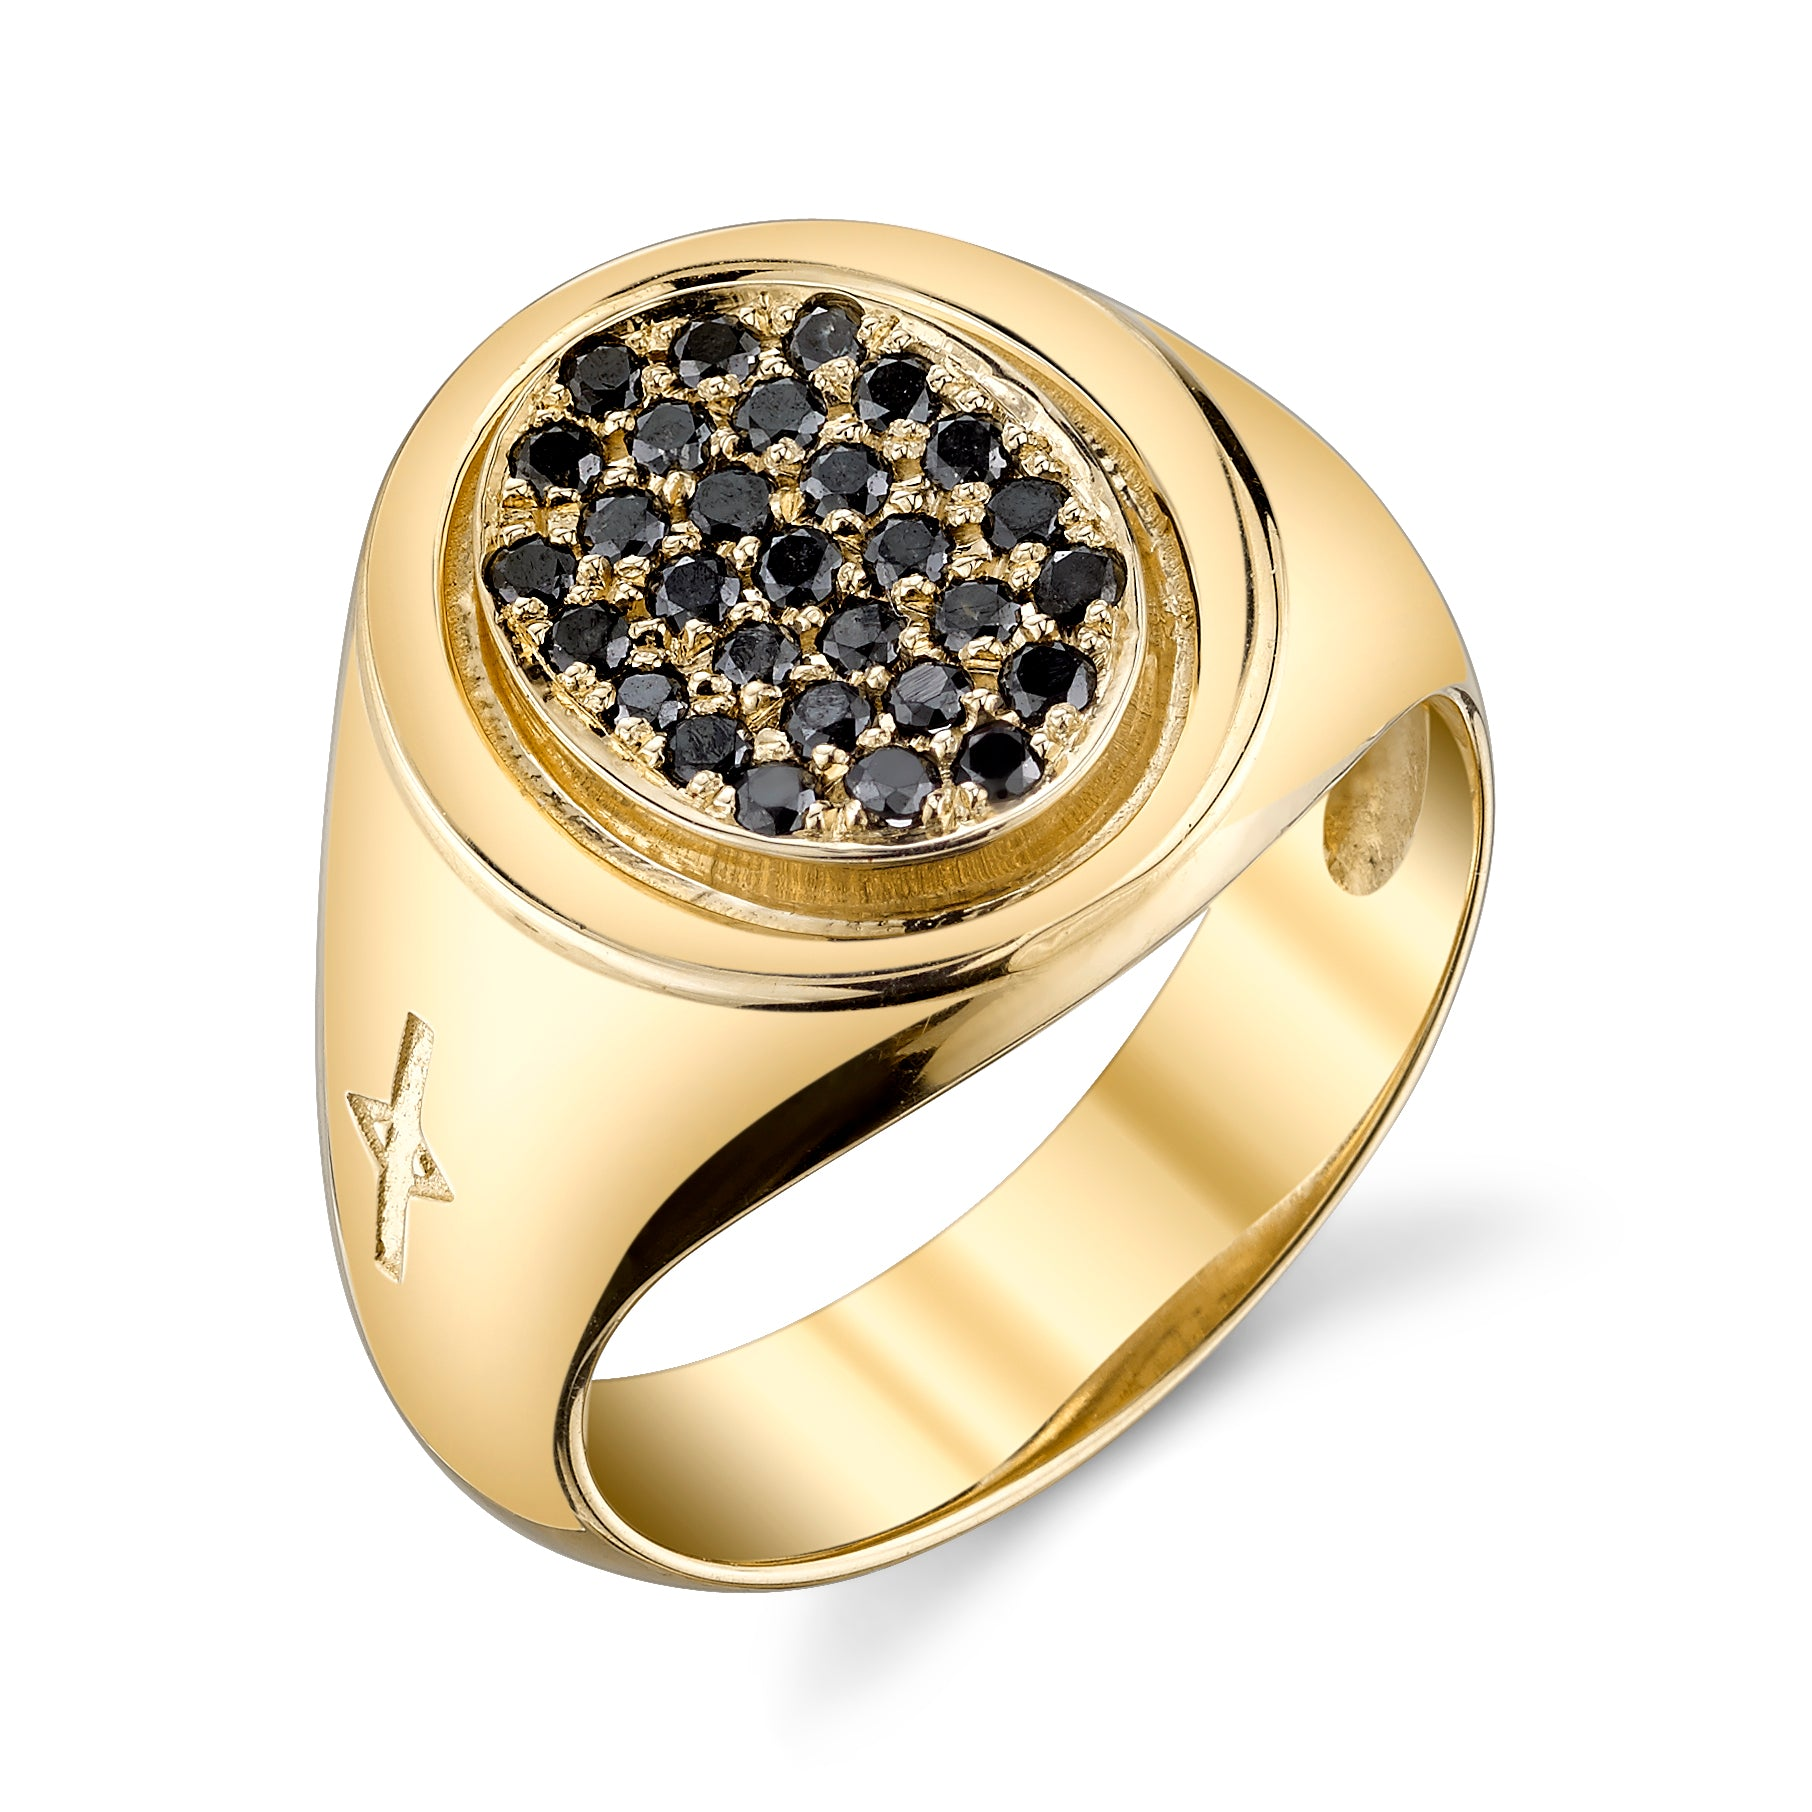 Oval Signet Ring With Black Pavé Diamonds - Gabriela Artigas